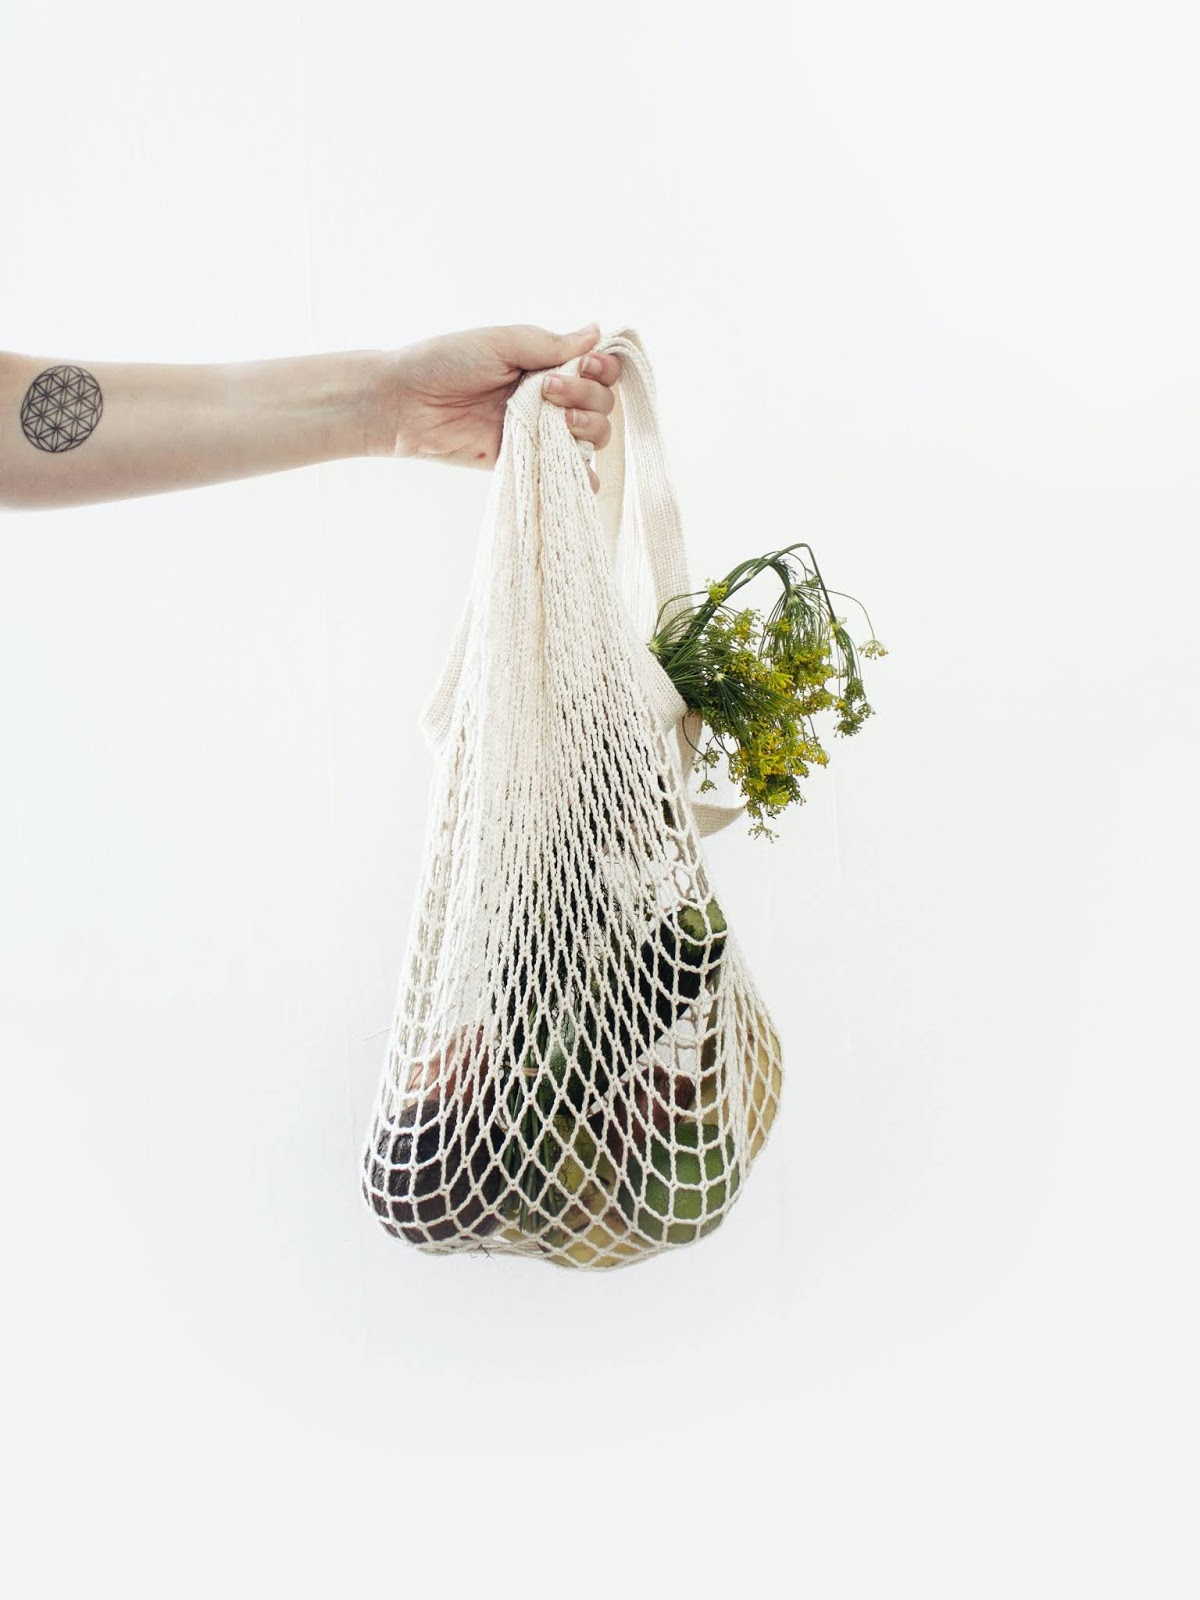 Woman holding string shopping bag with groceries